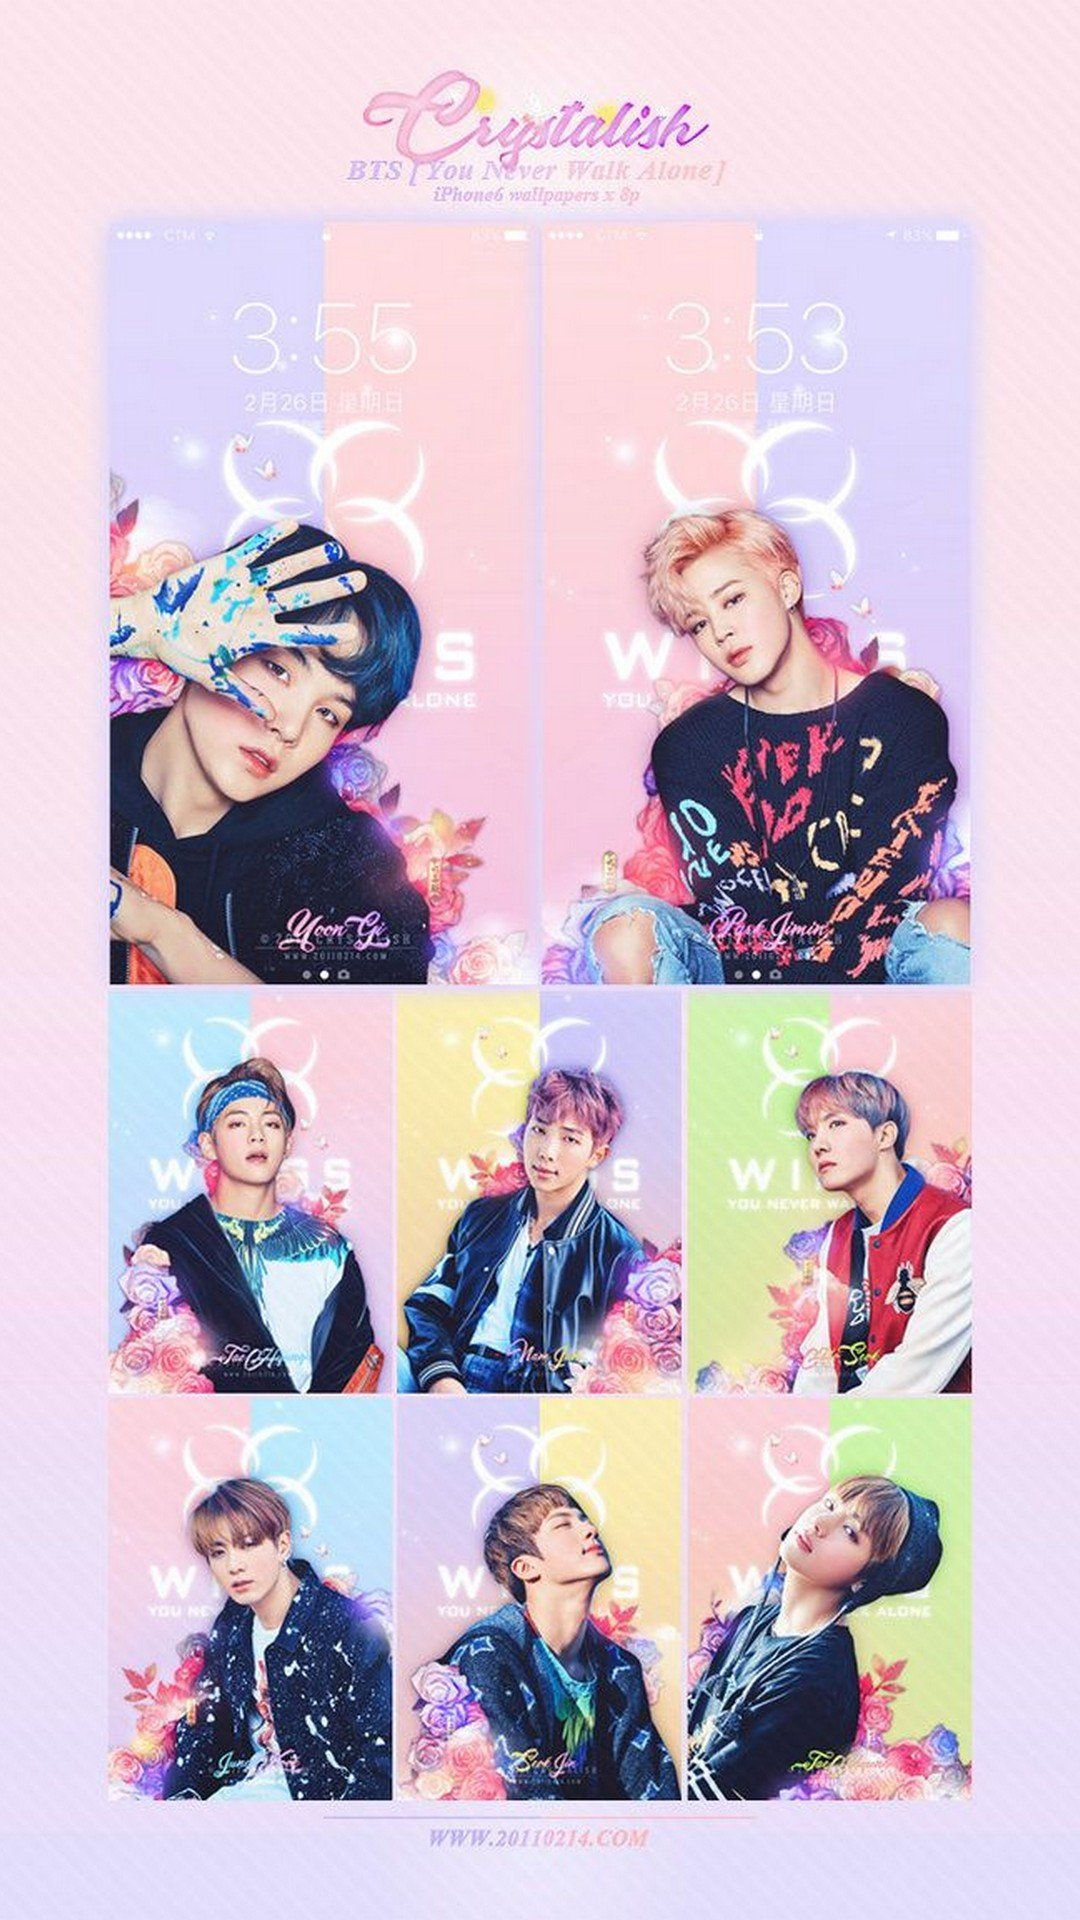 iPhone 7 Wallpaper BTS 2020 Cute Wallpapers 1080x1920